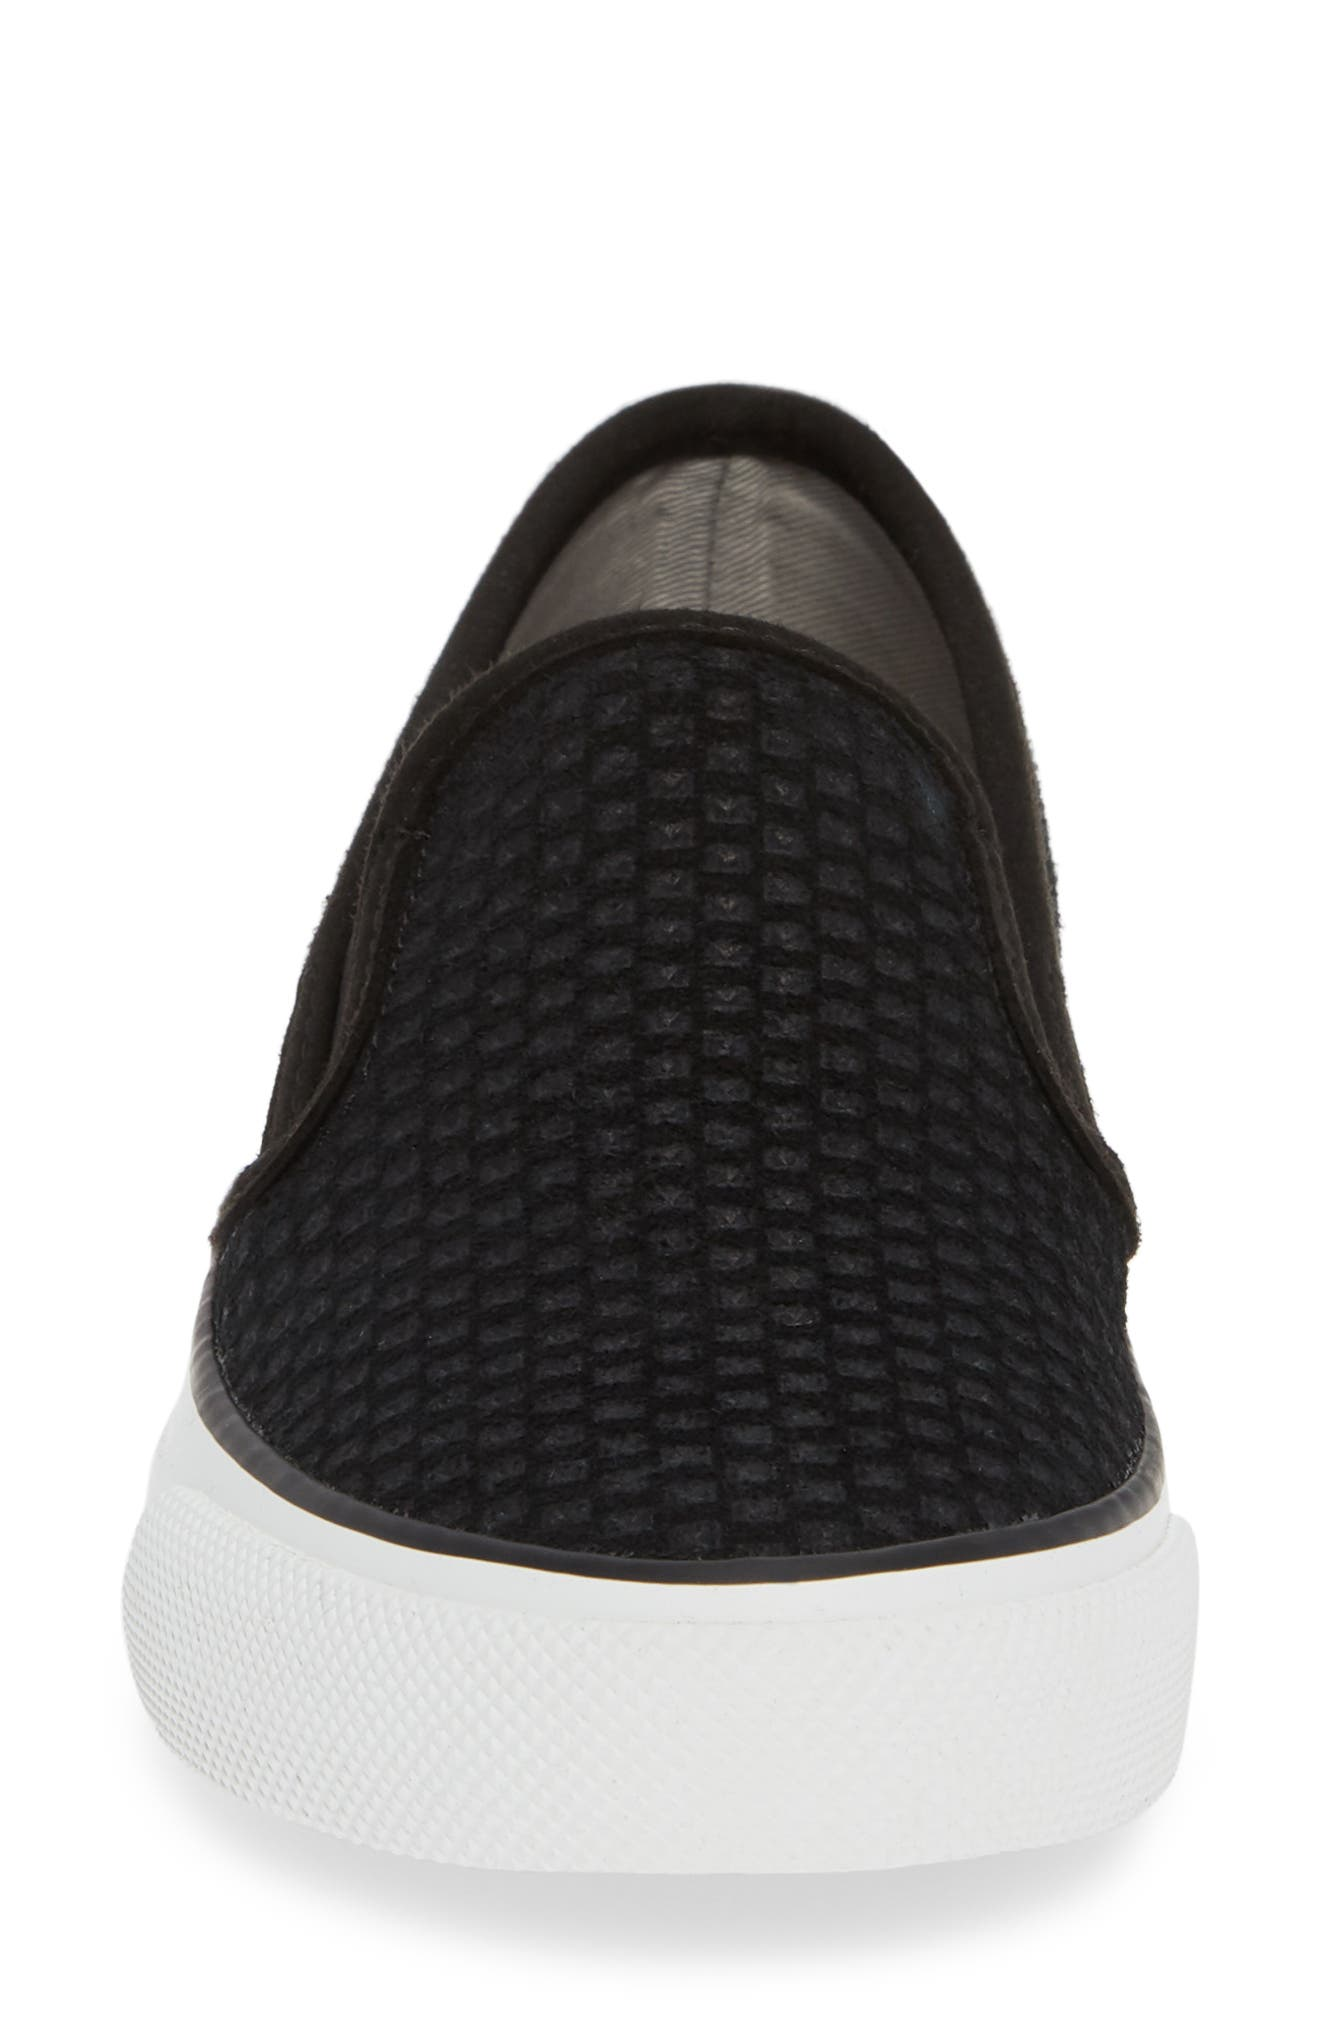 Seaside Embossed Slip-On Sneaker,                             Alternate thumbnail 4, color,                             001